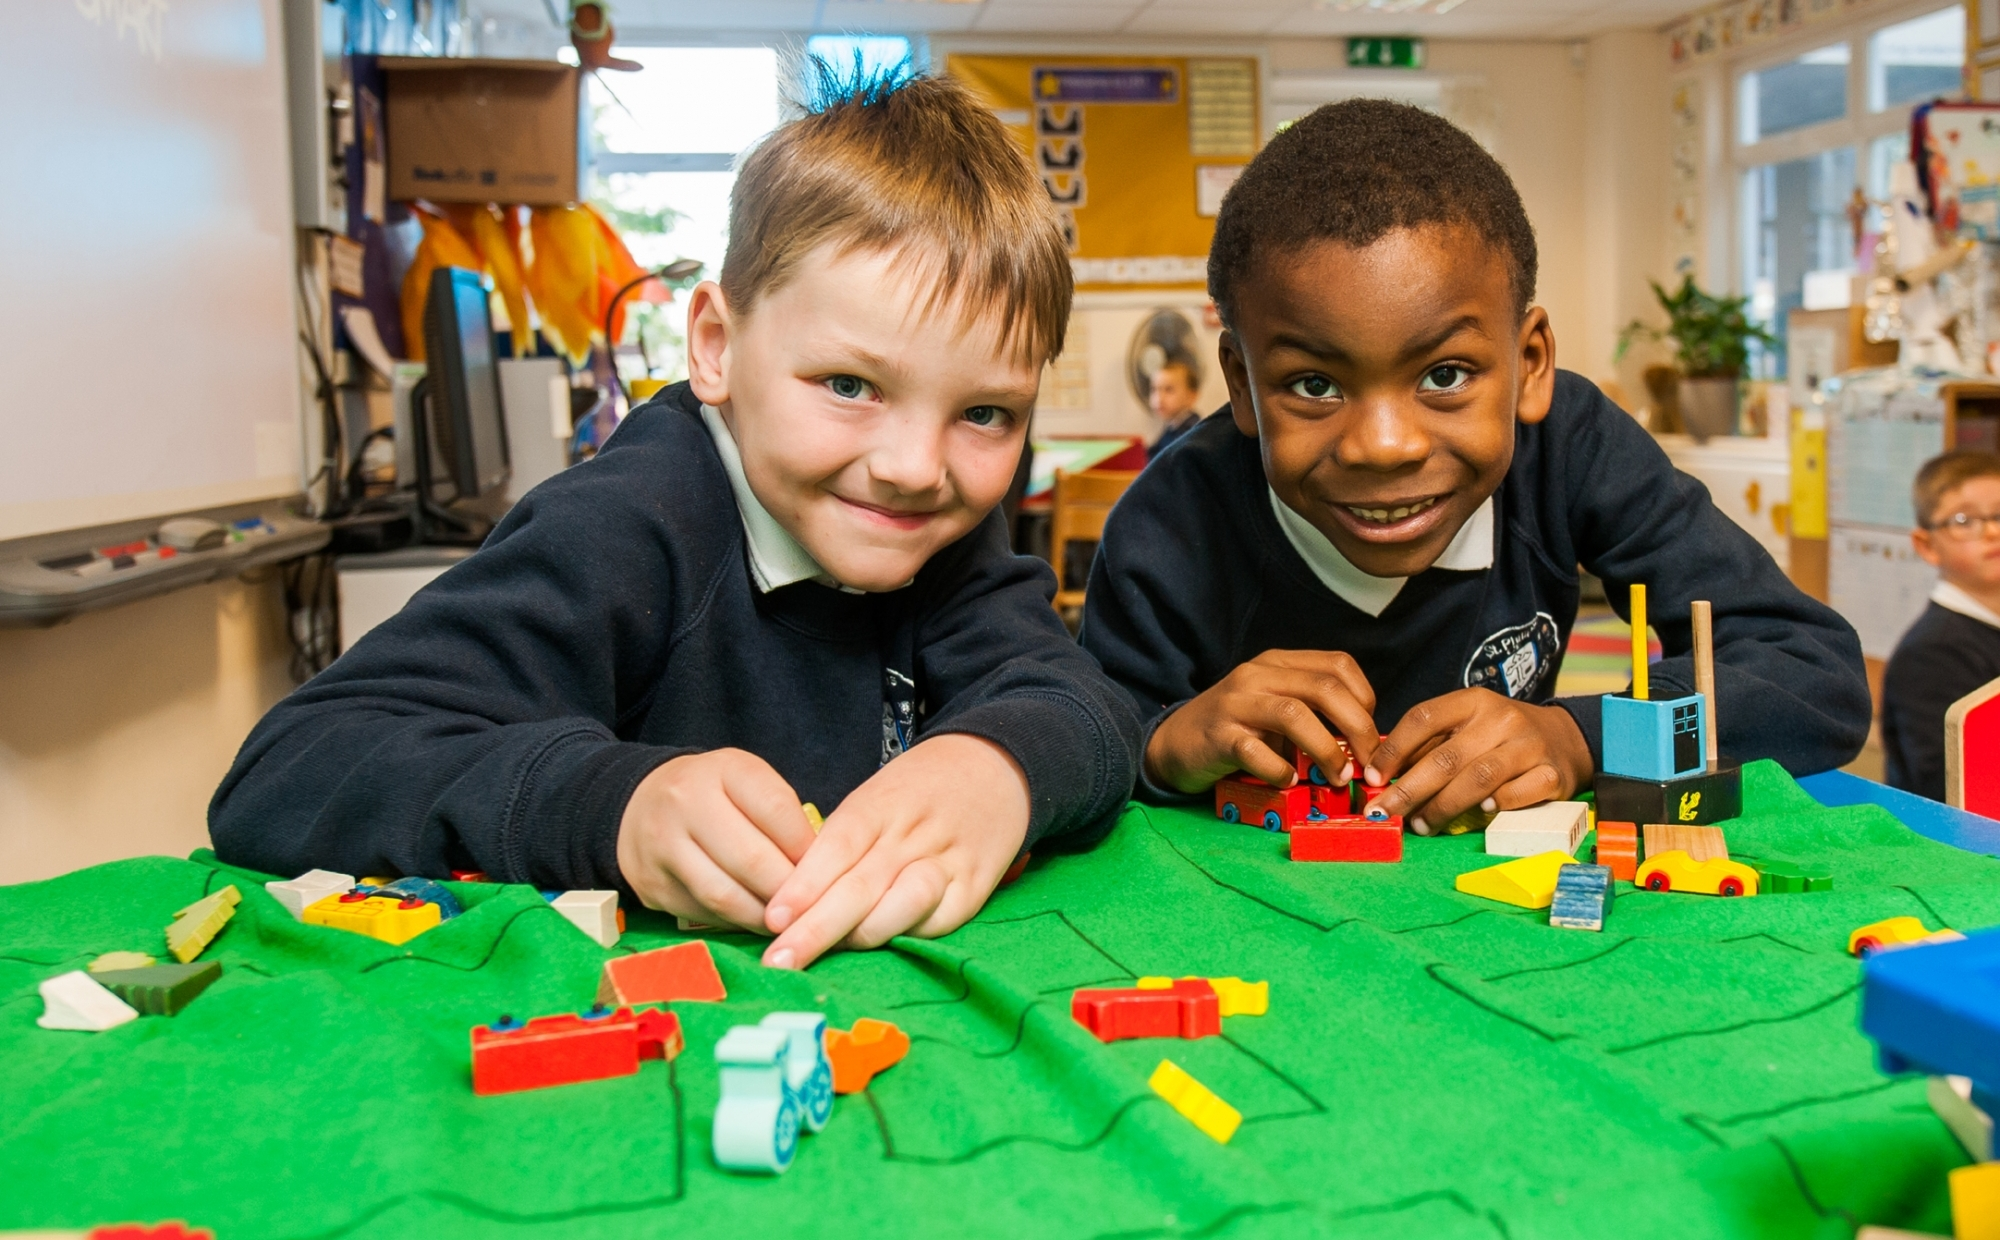 Pupils in a classroom at St Philip's CE Primary School